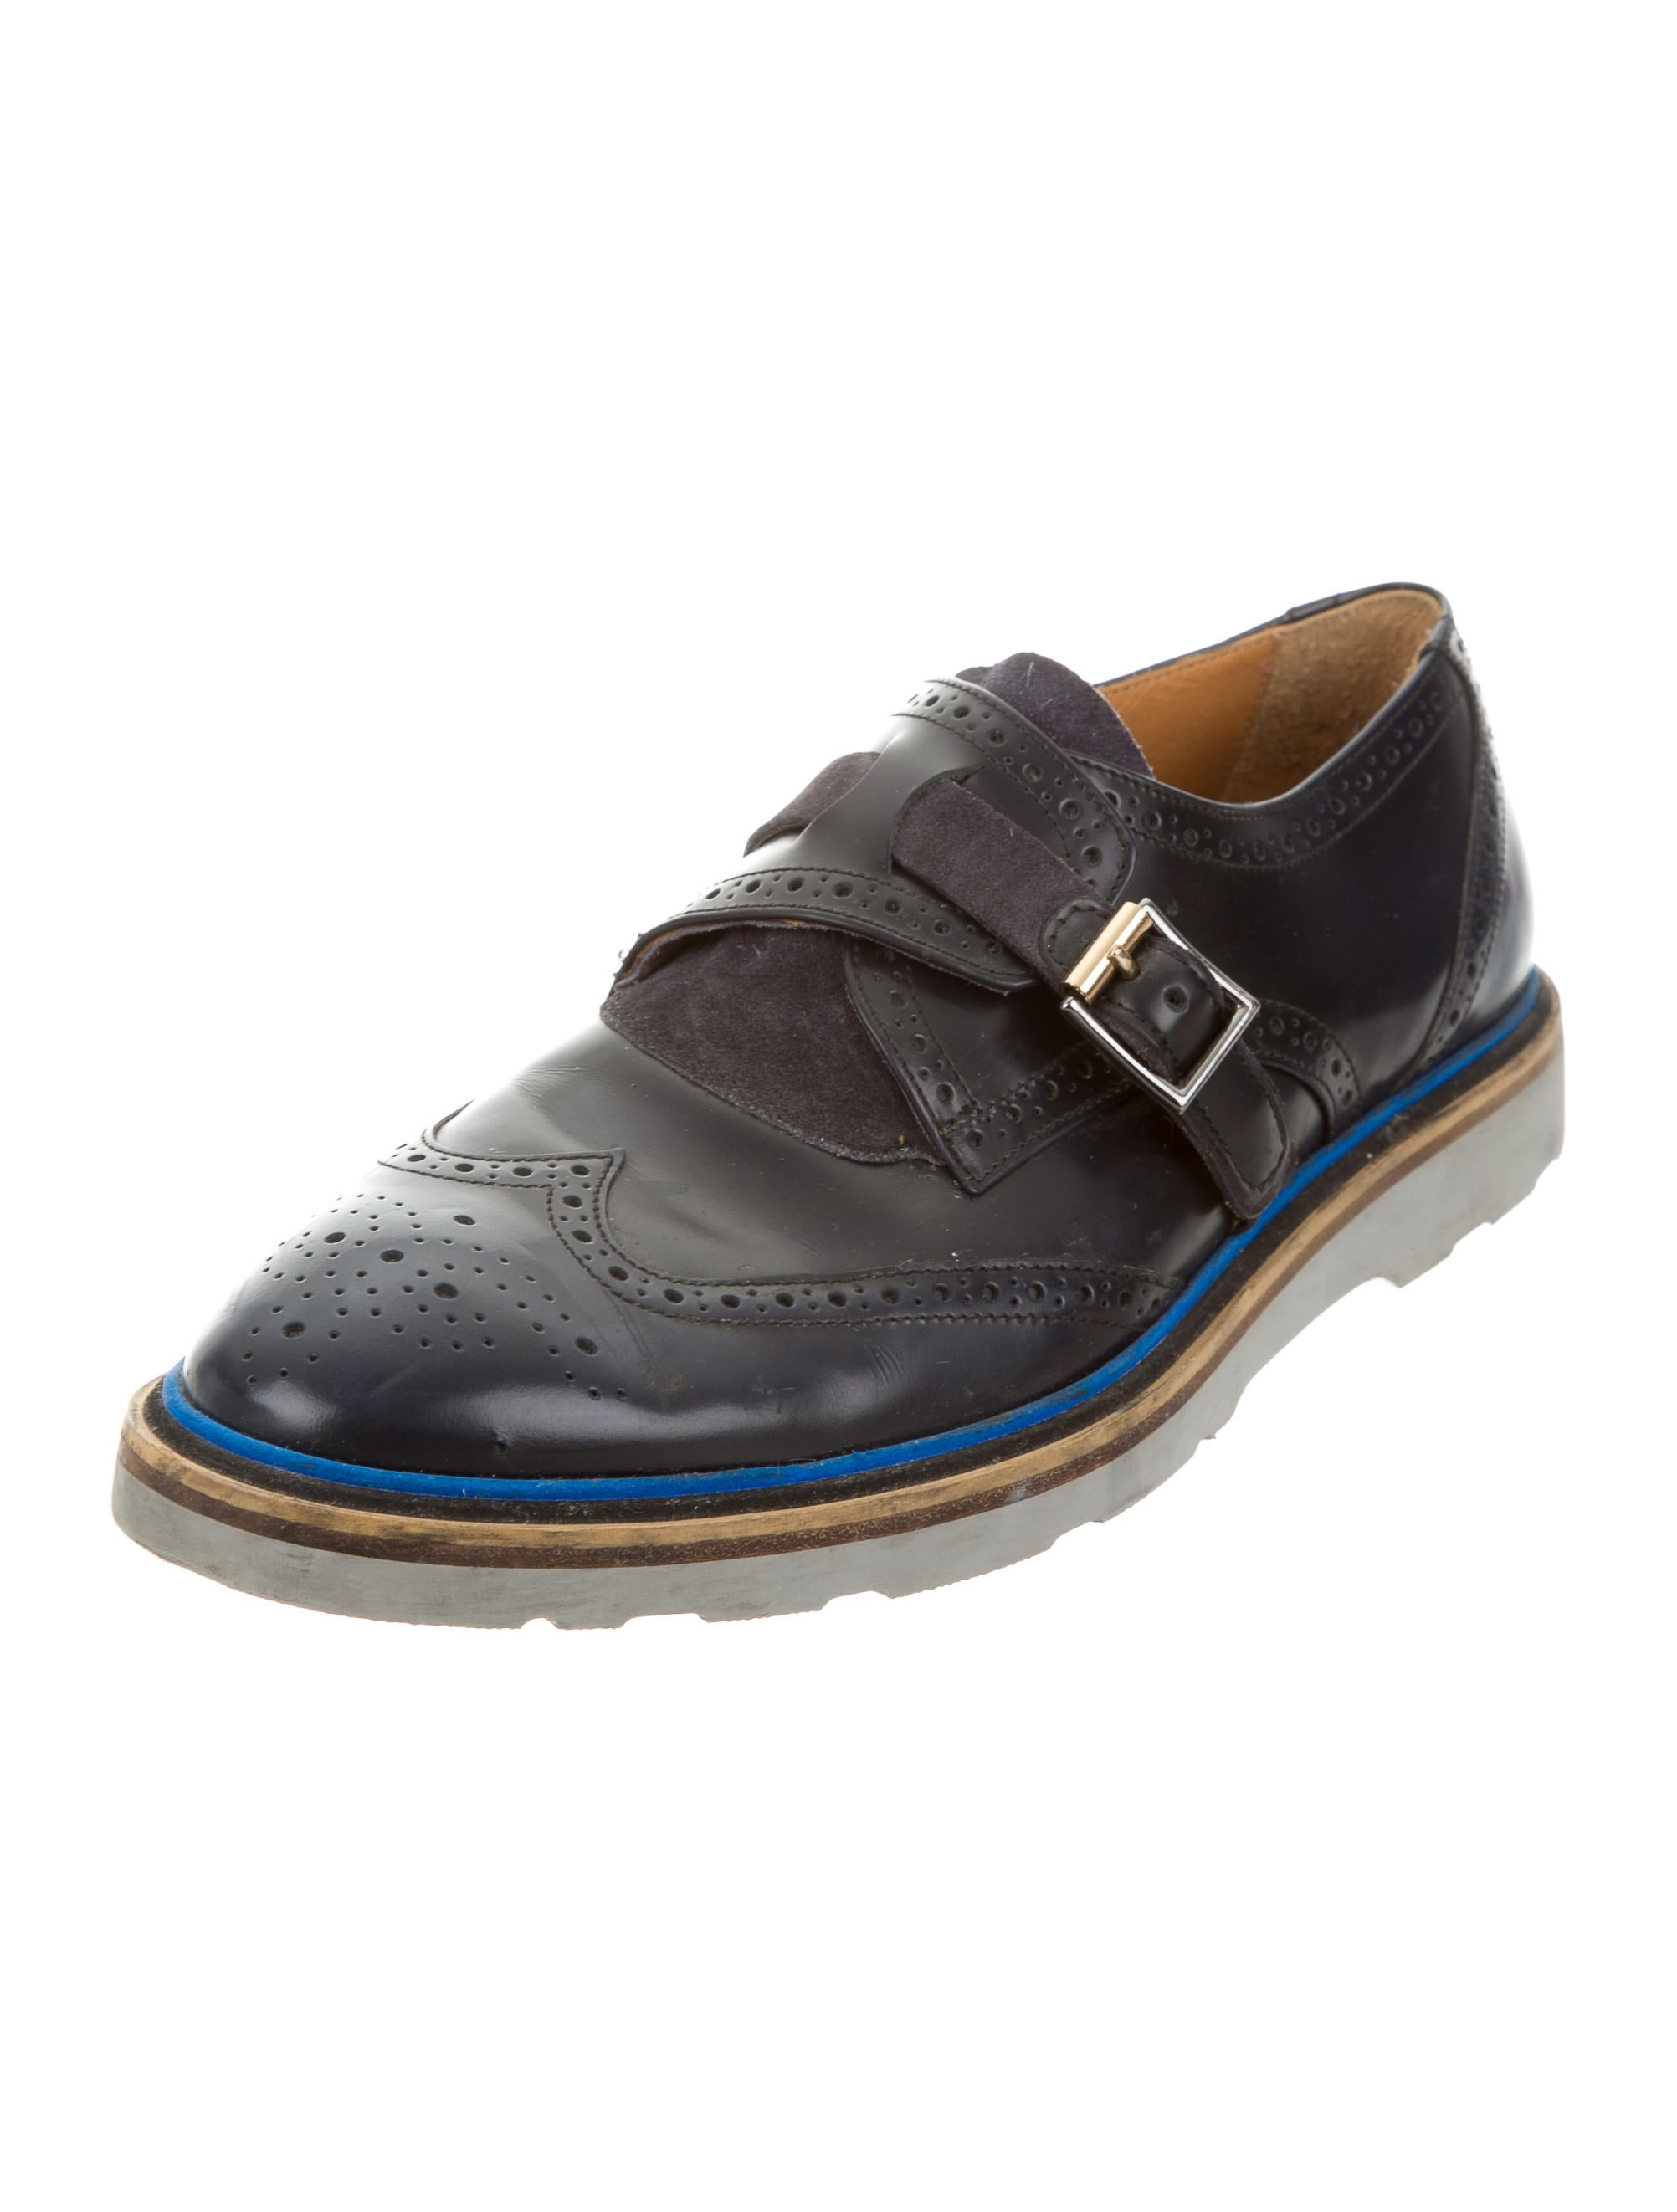 Contemporary Flatware Paul Smith Wingtip Monk Strap Oxfords Shoes Wps22957